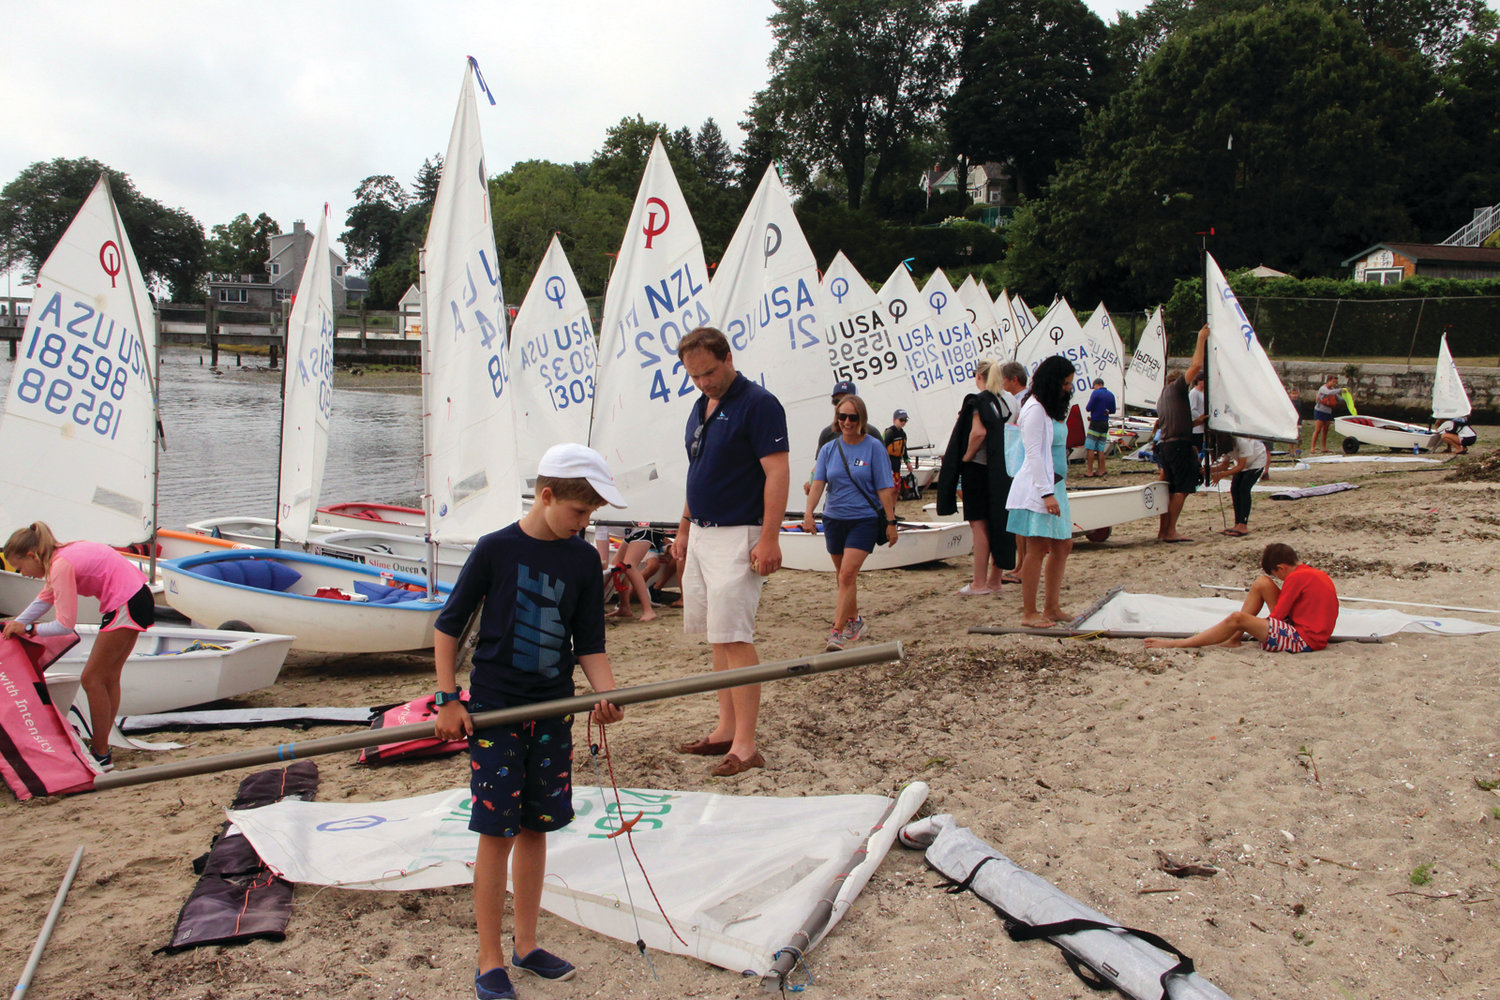 READY TO LAUNCH: Optis line the beach at the Edgewood Yacht Club in preparation for Wednesday's regatta.